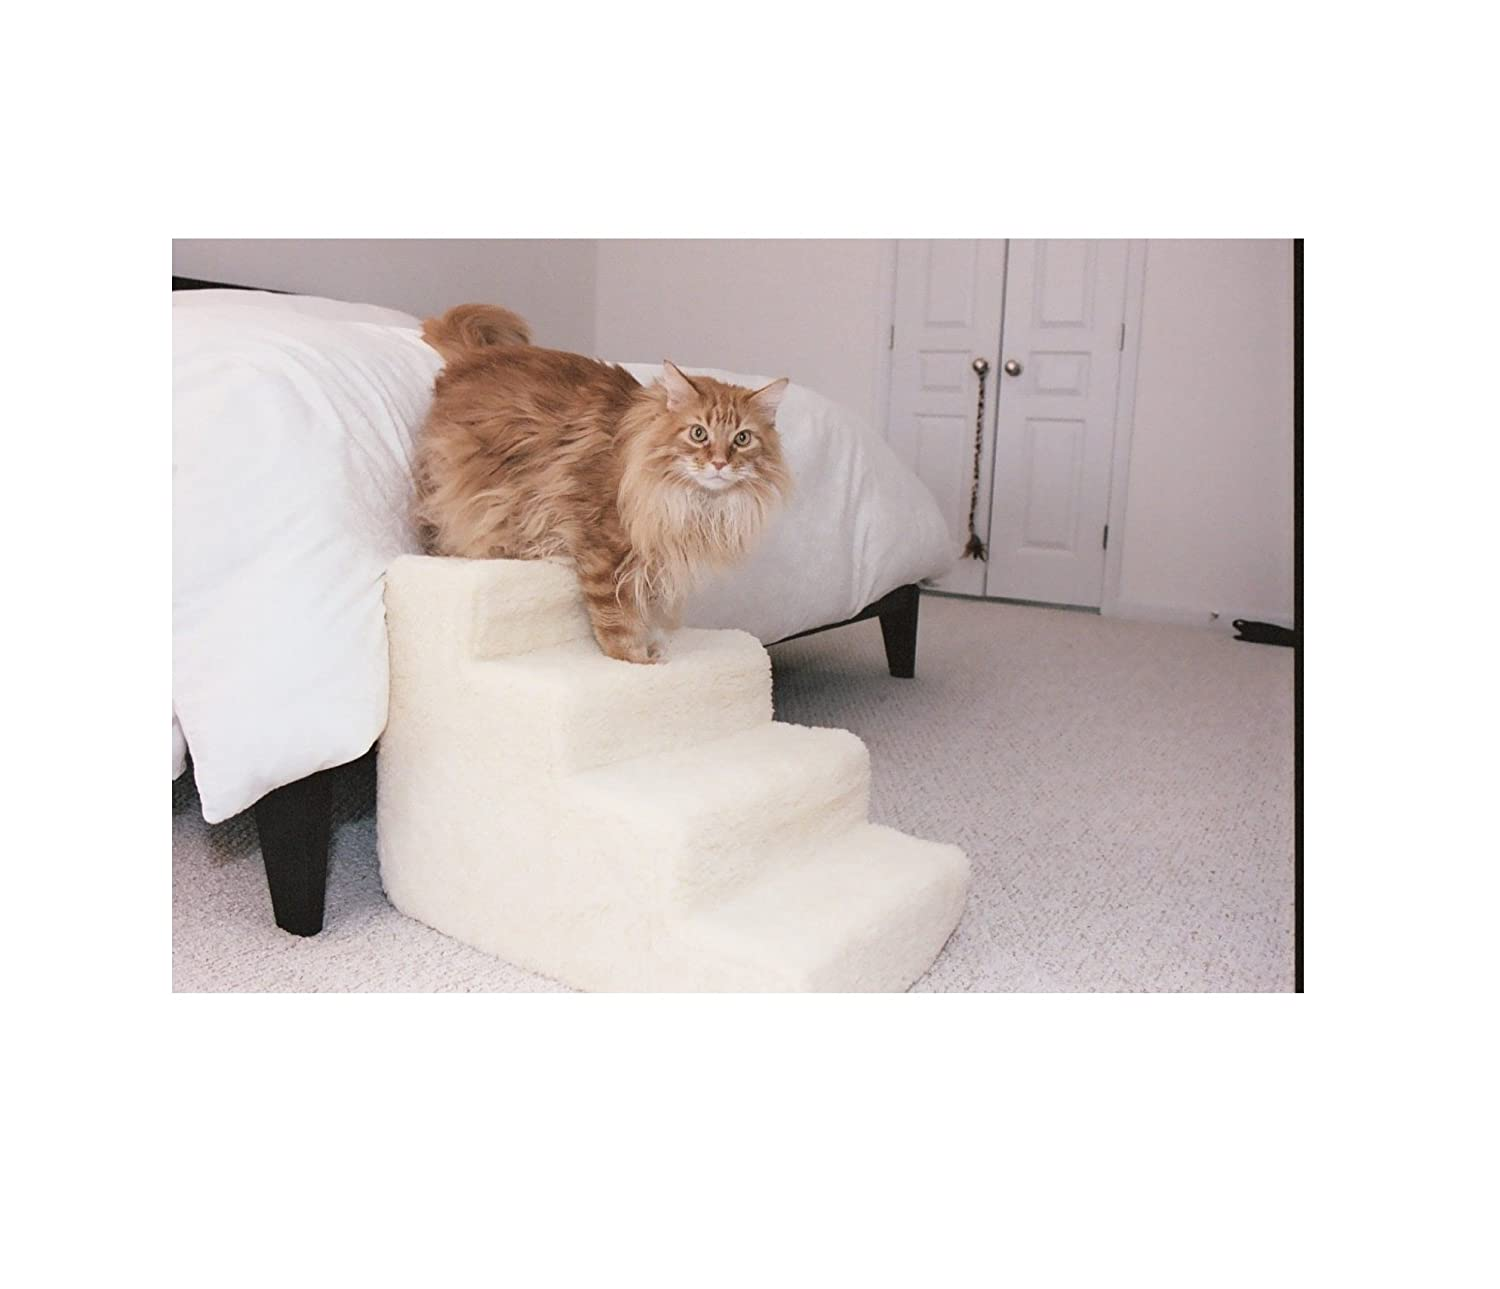 Pet Stairs Petstairz 4 Step High Density Foam Pet Step and Pet Stair with Beige Removable and Washable High Curly Pile Shearling Cover for Pets up to 50 Lbs.